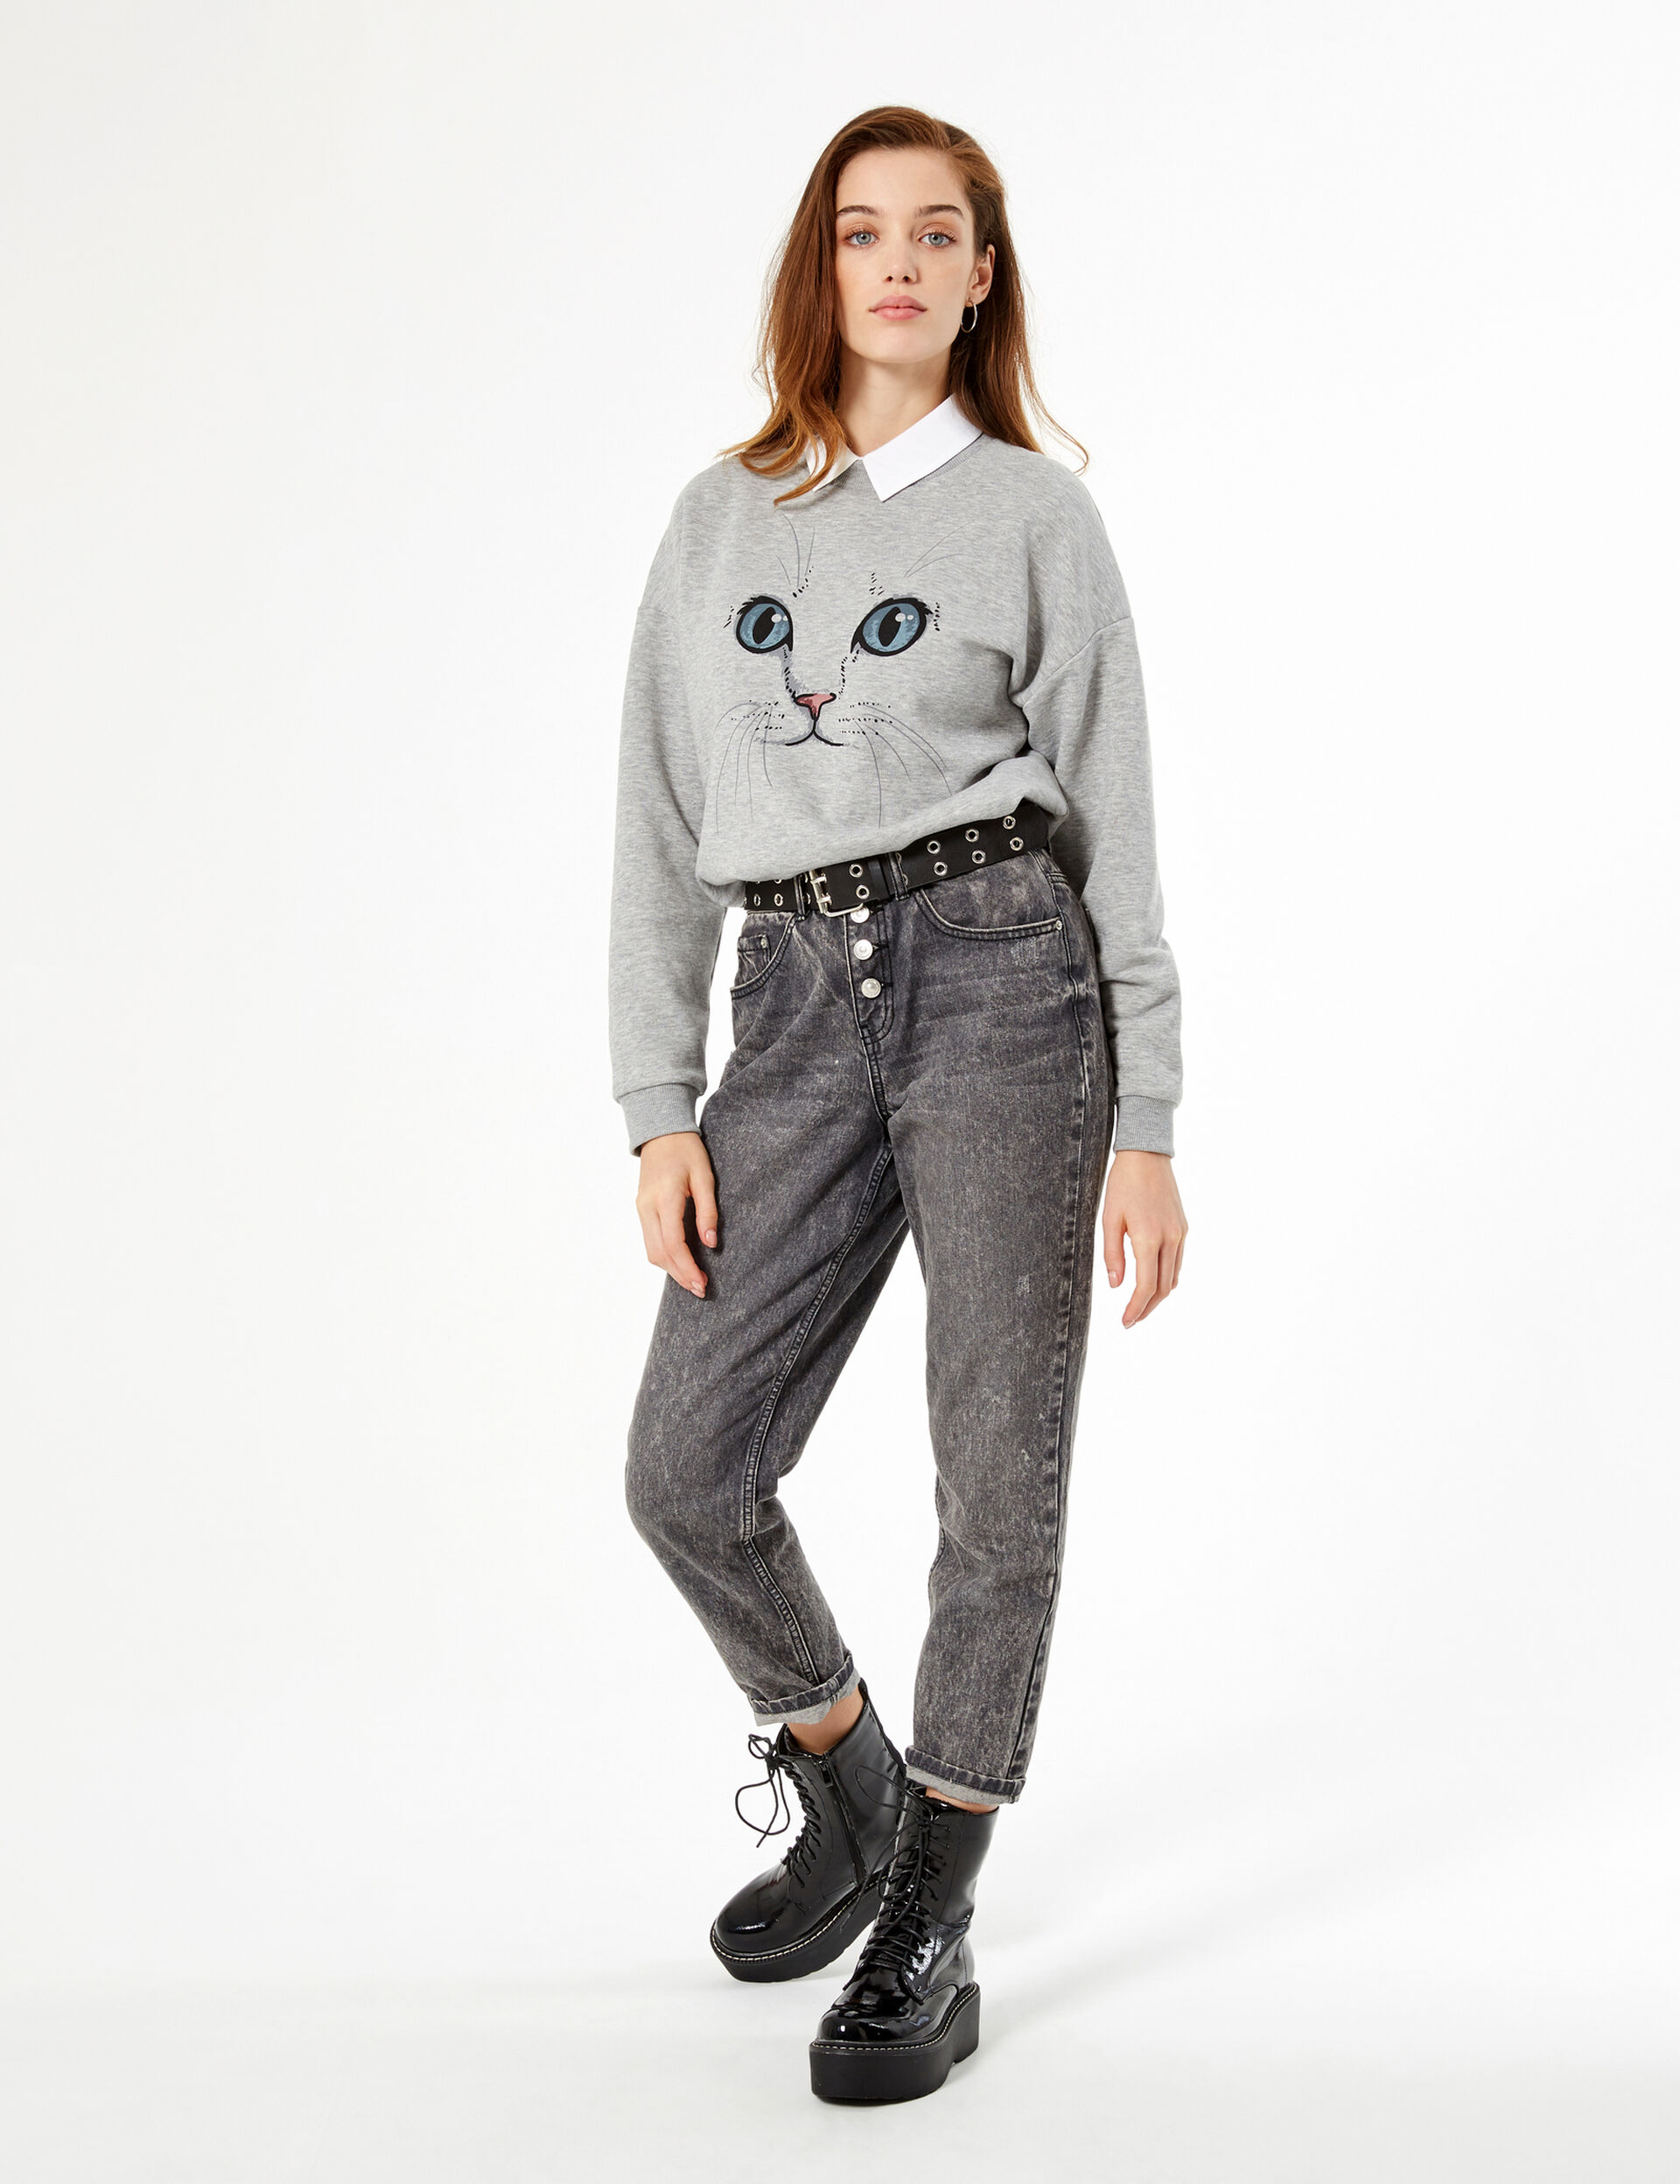 Cat jumper